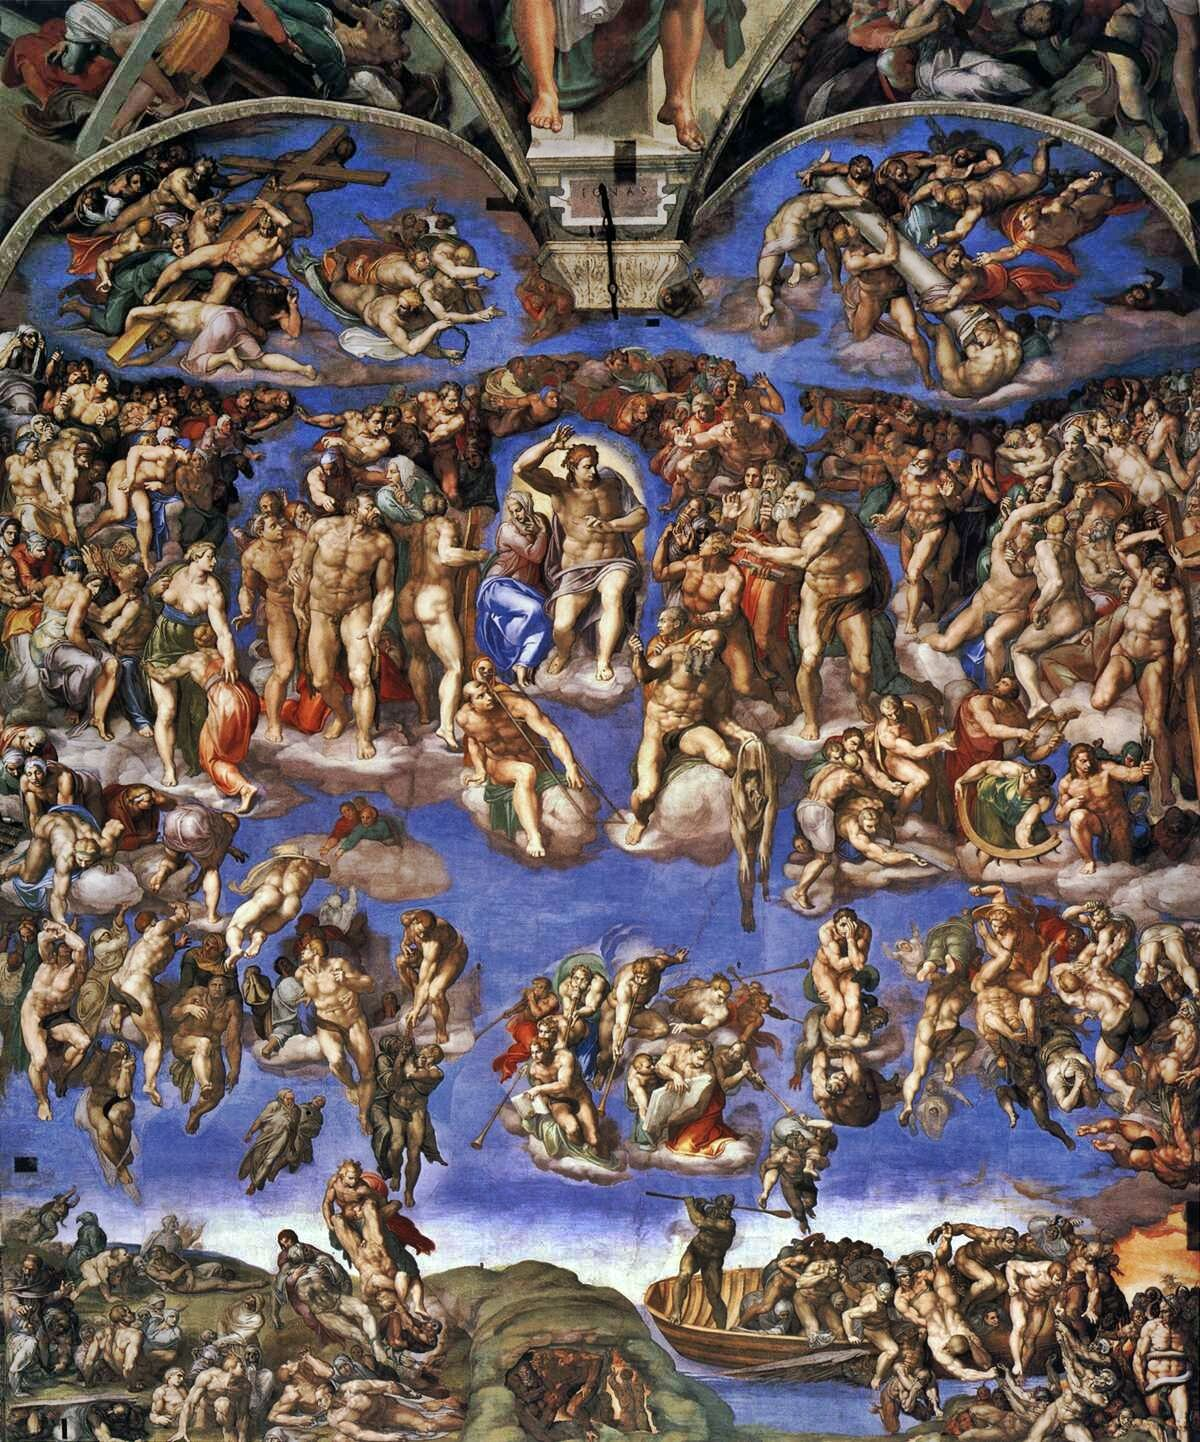 Michaelangelo, Last Judgment, 1536-41. Photo via Wikimedia Commons.